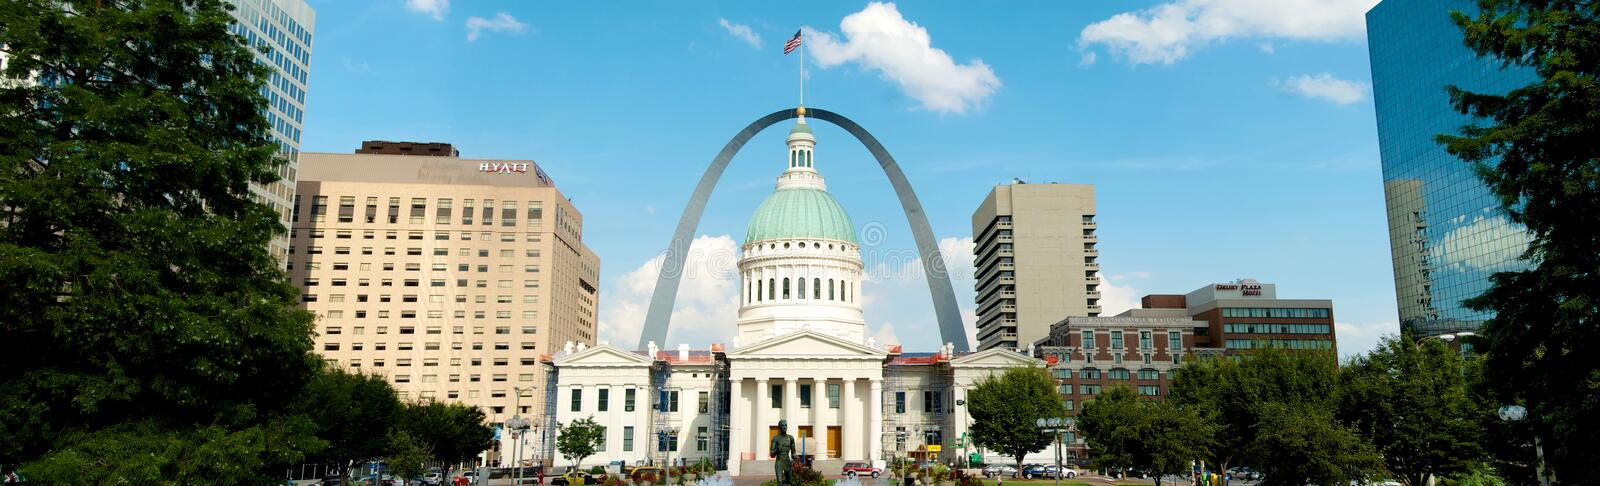 St. Louis Gateway Arch and Court House Panorama stock images